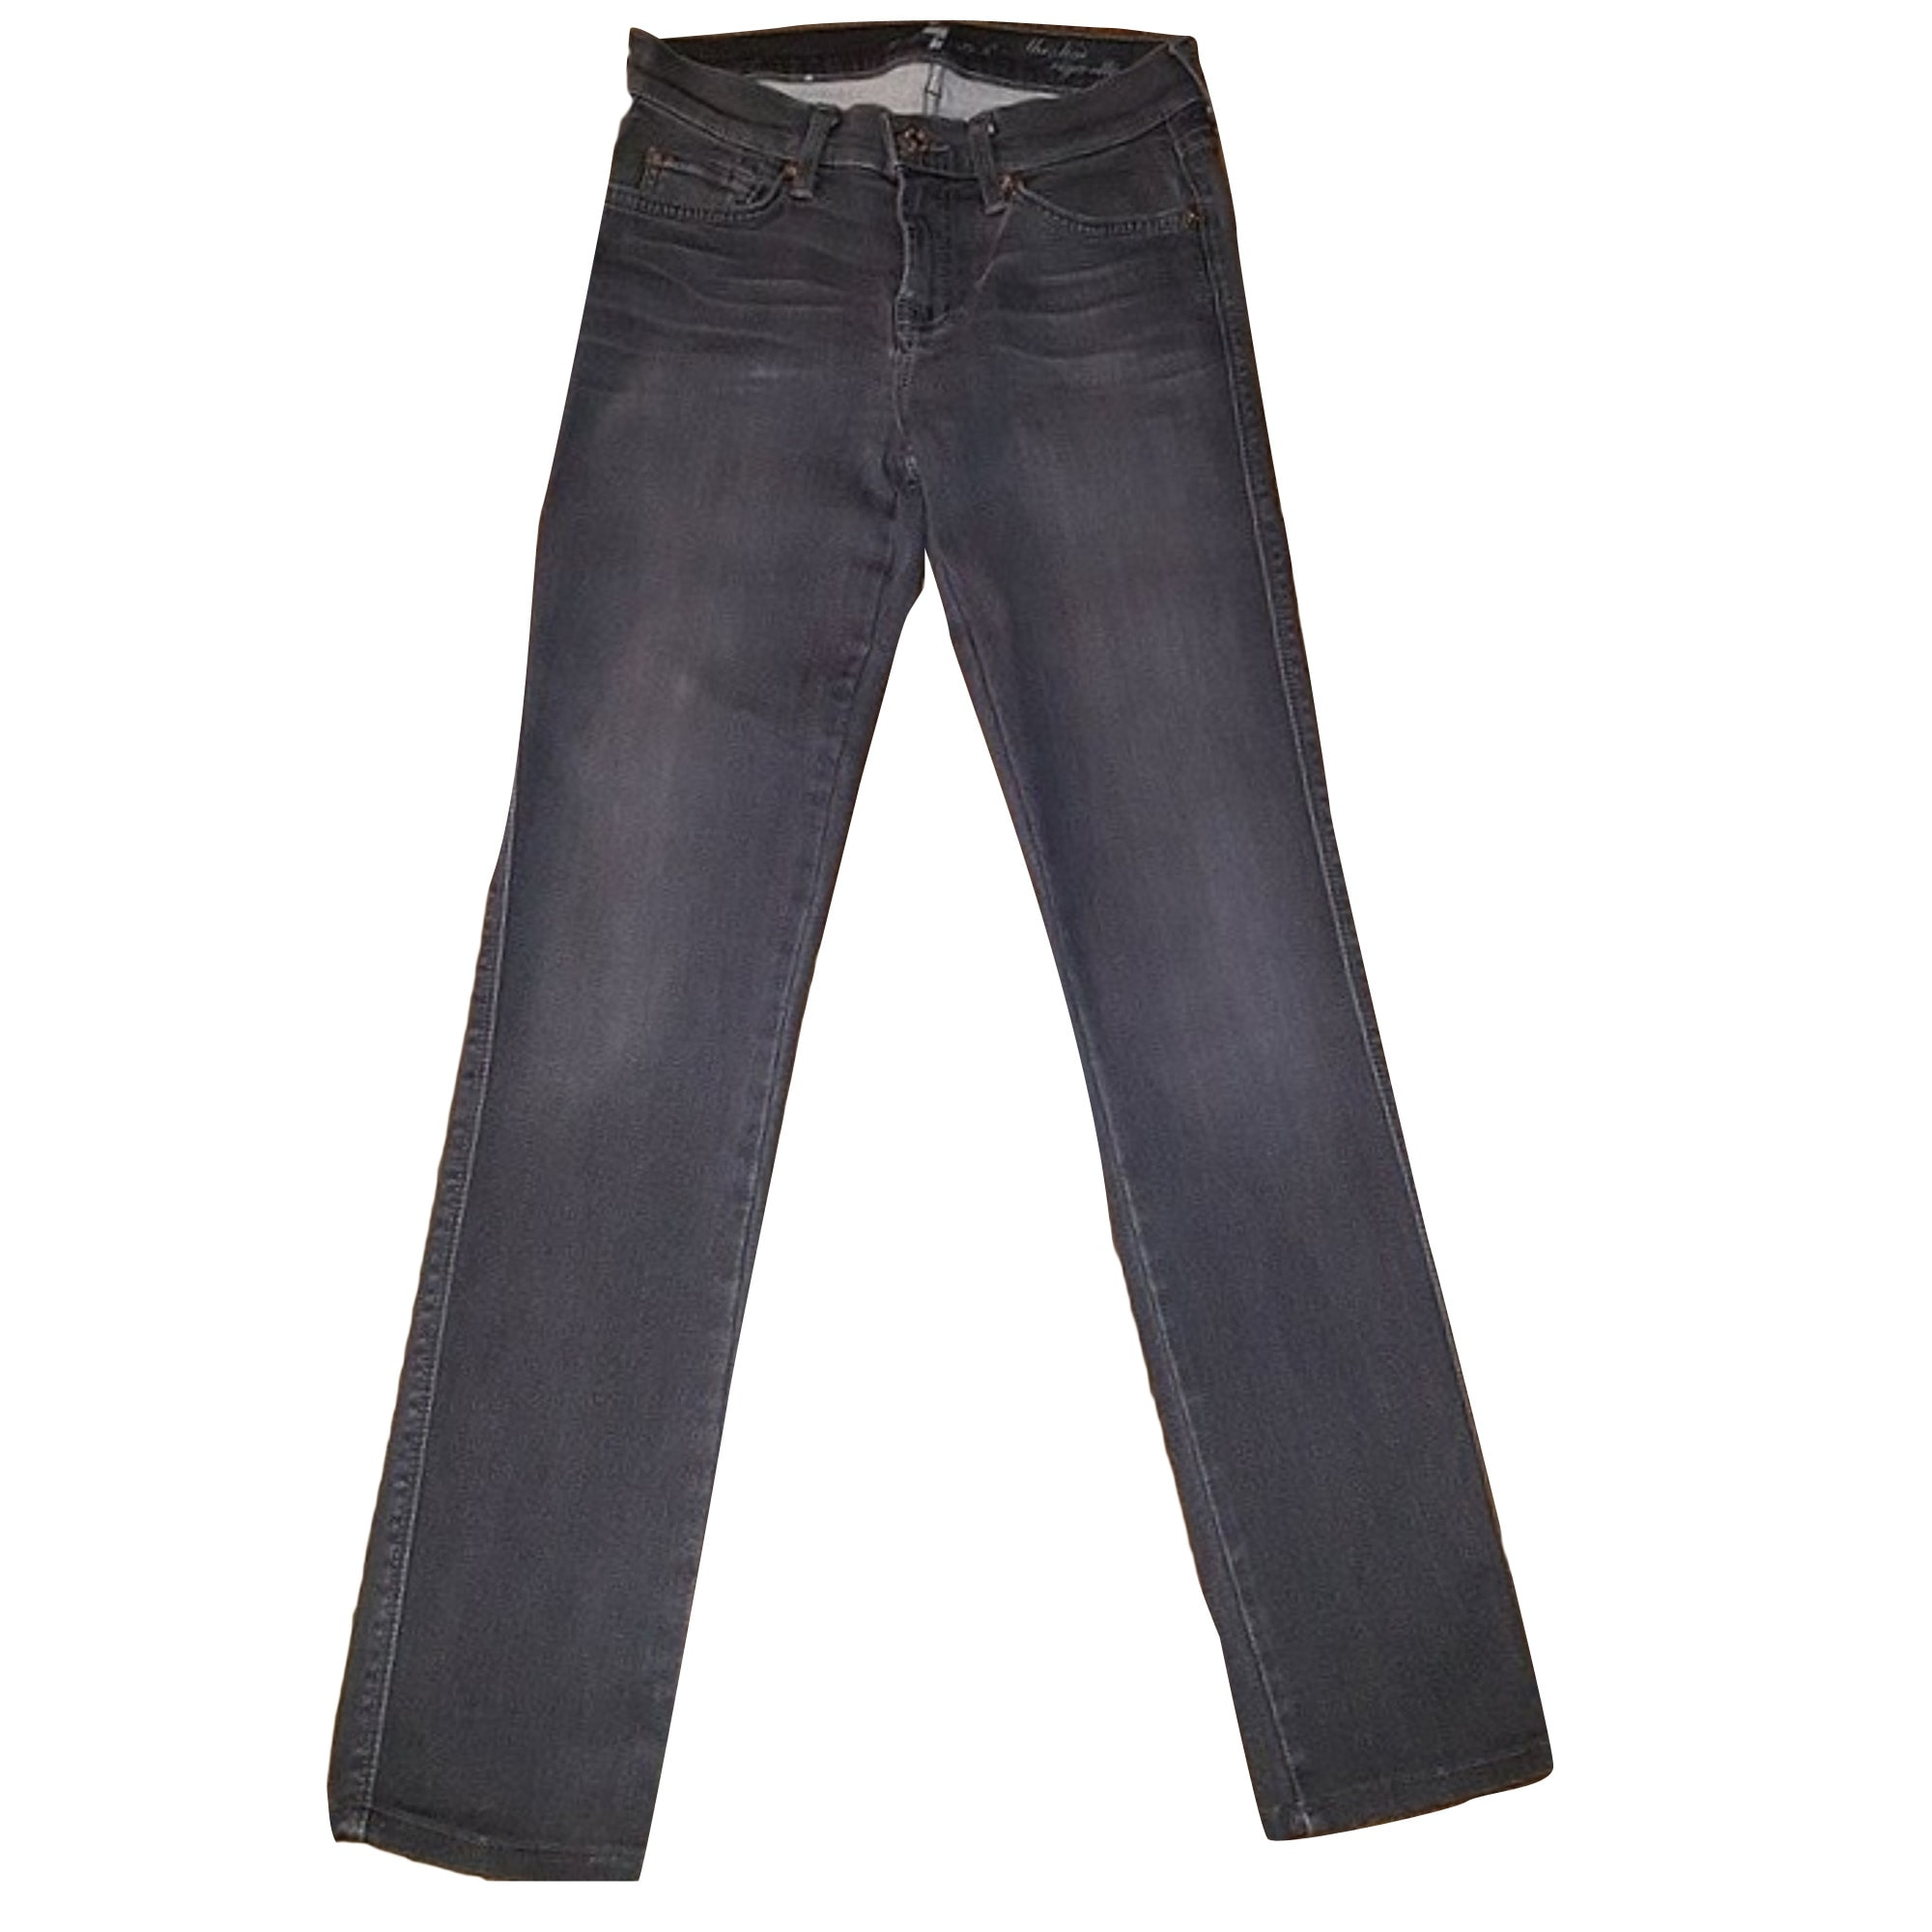 Pantalon slim, cigarette 7 FOR ALL MANKIND Gris, anthracite